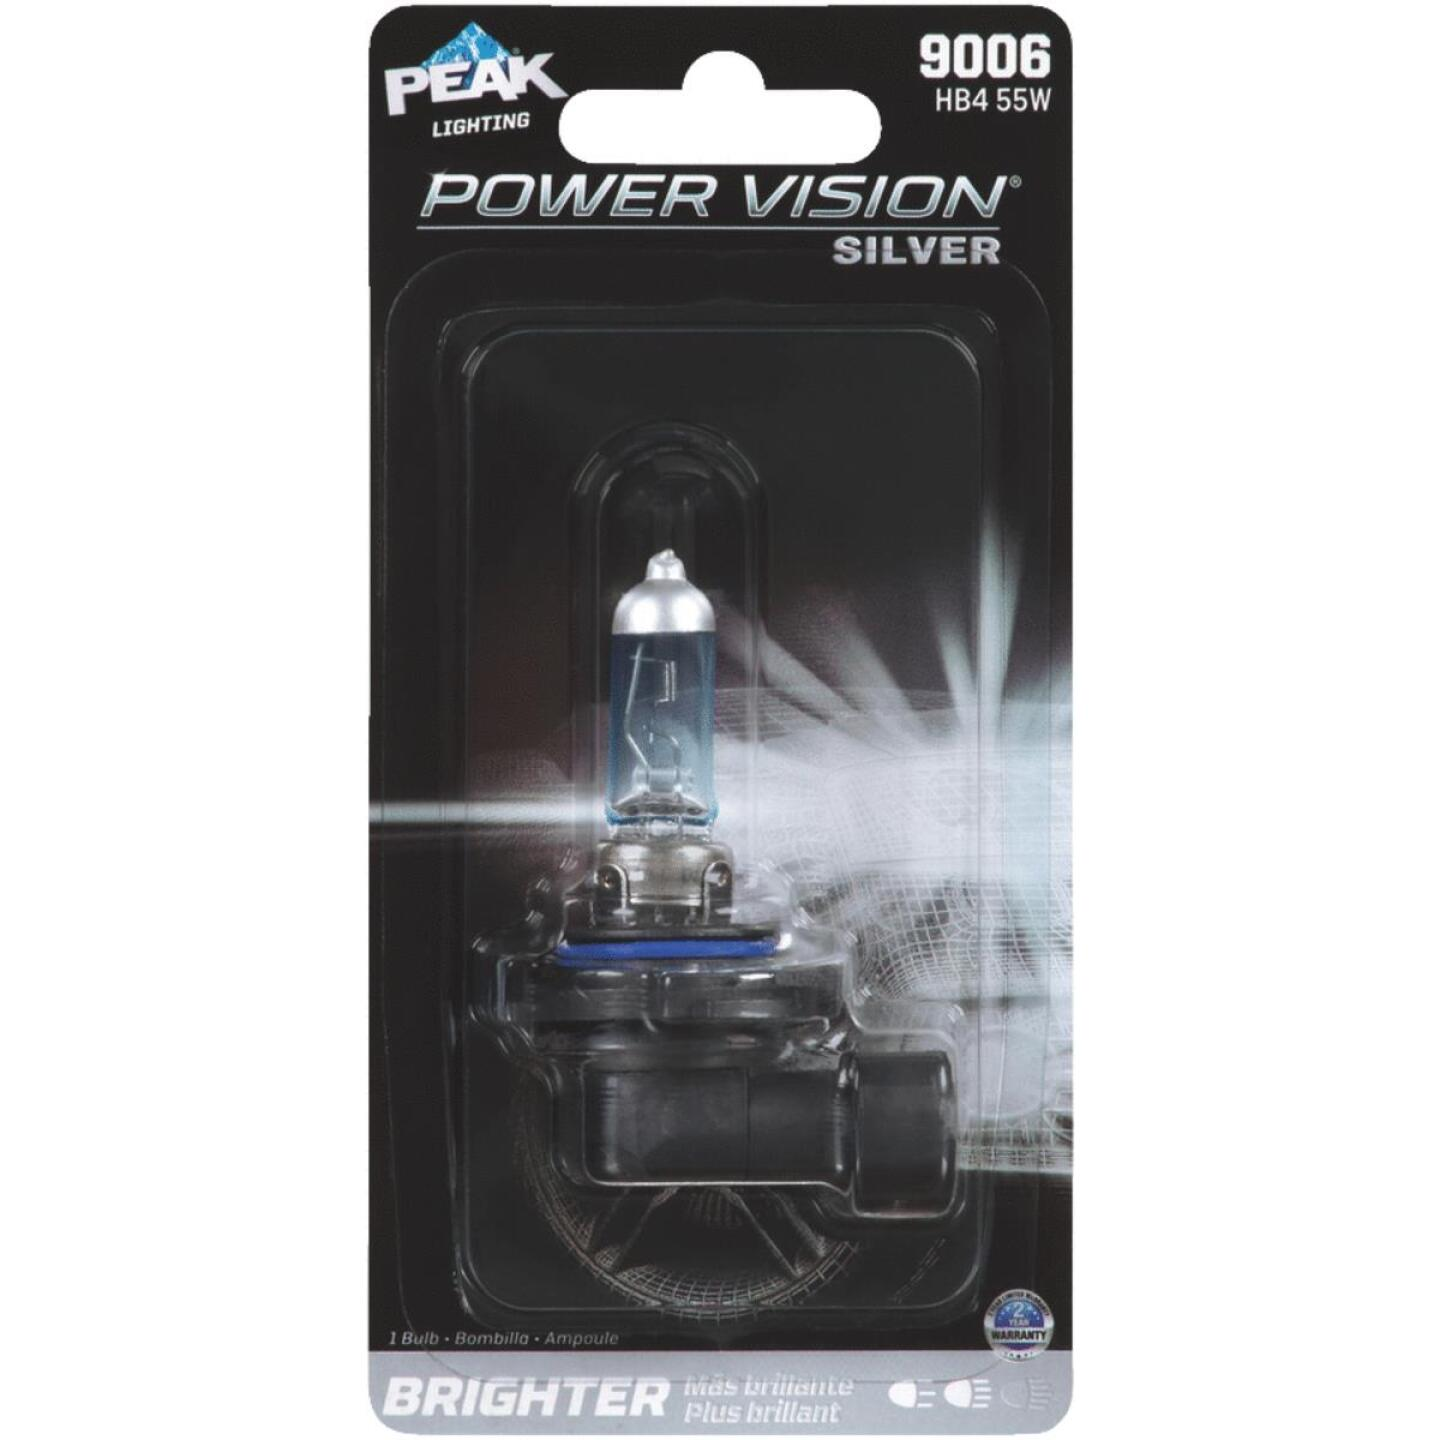 PEAK Power Vision Silver 9006 HB4 12.8V Halogen Automotive Bulb Image 1